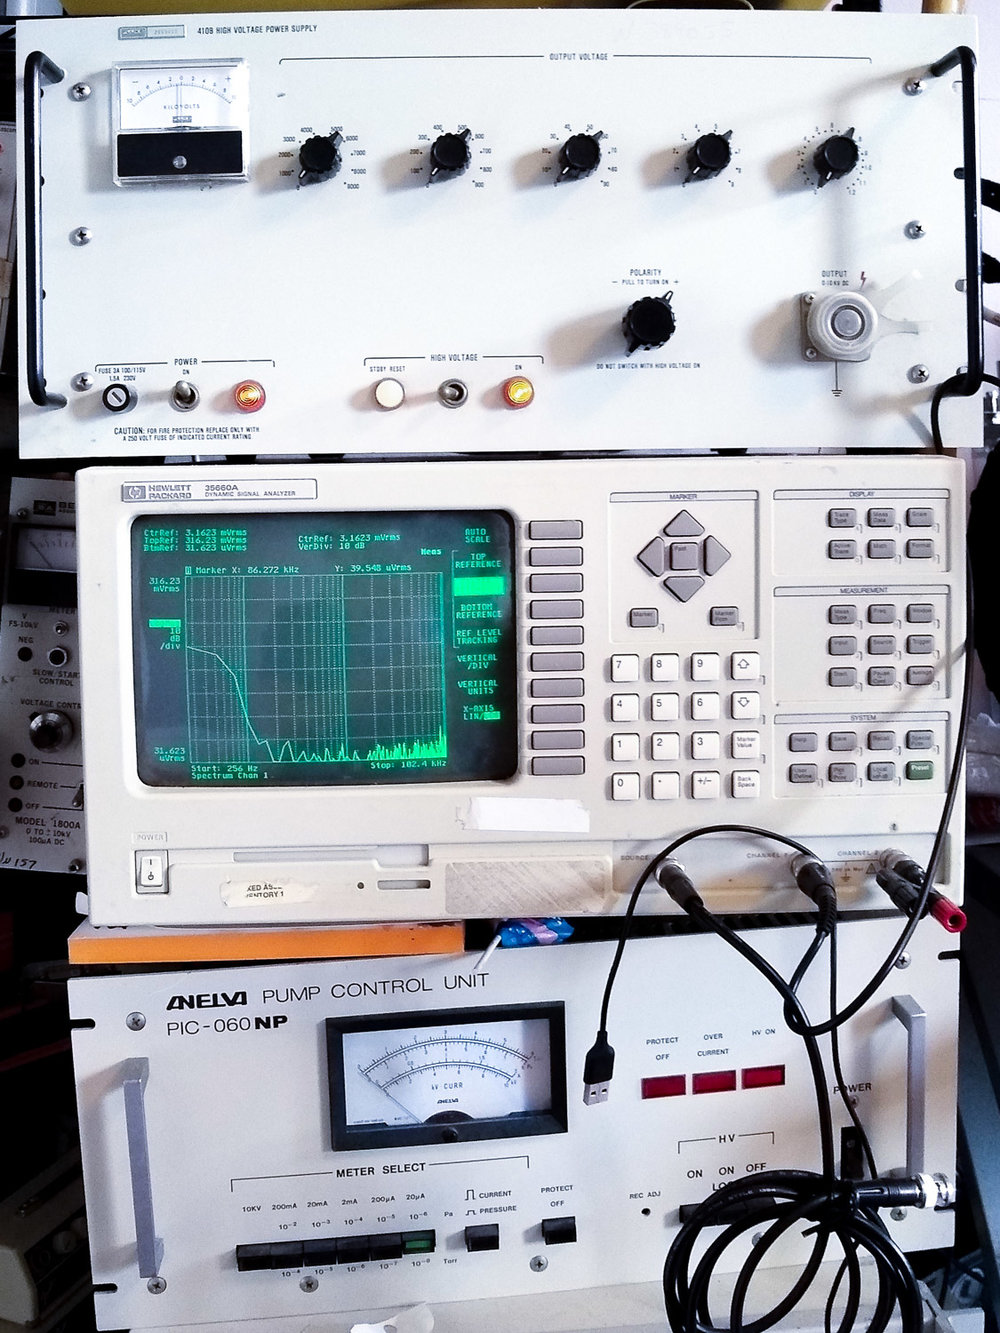 From top to bottom: a high voltage power supply, a dynamic signal analyzer, and a pump control unit.